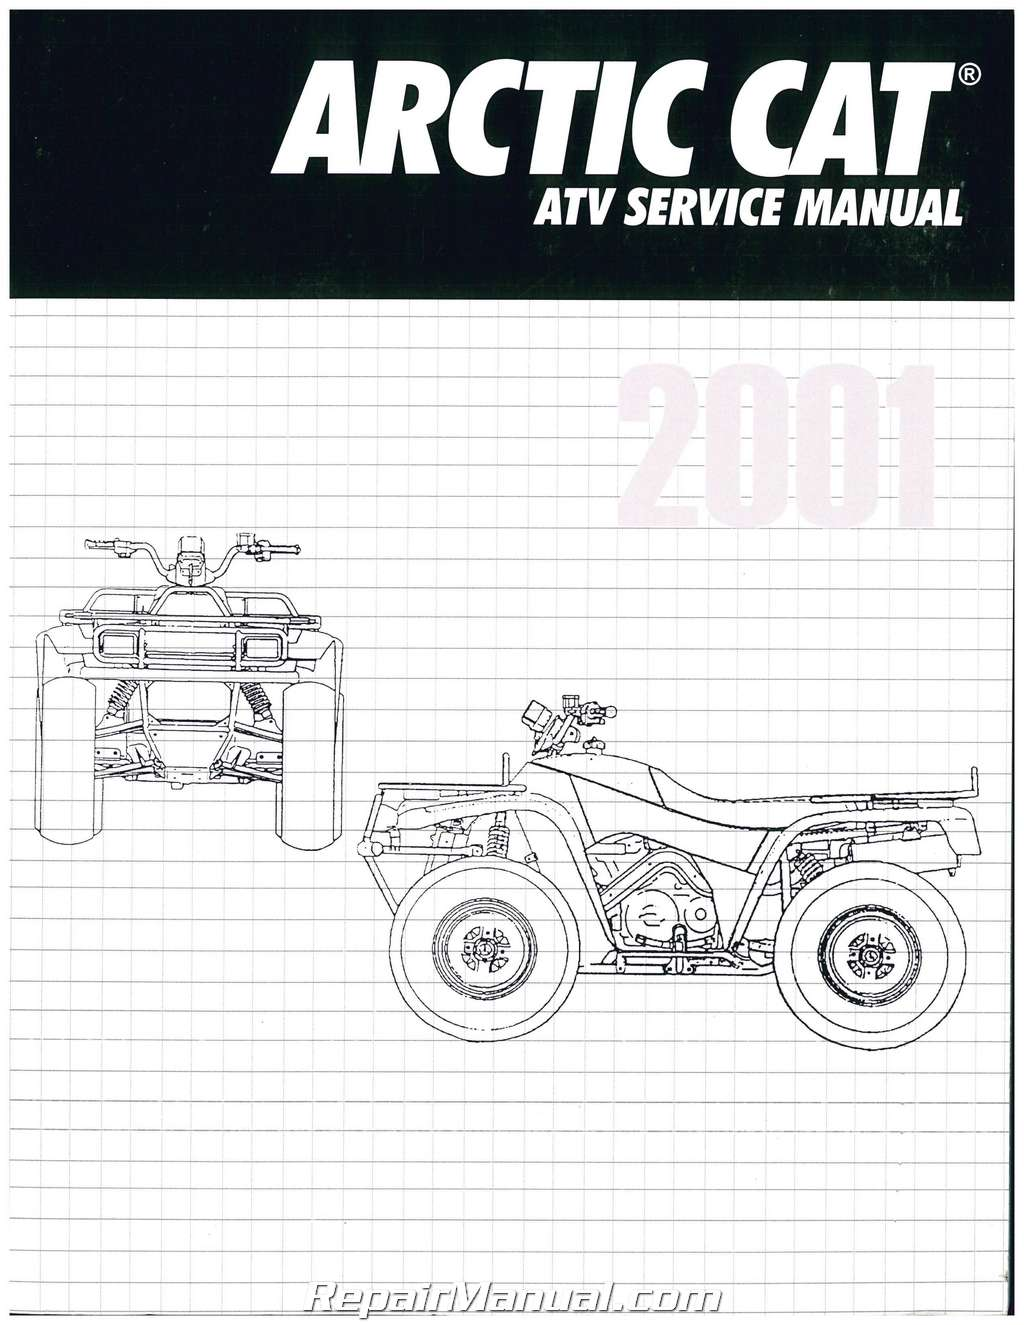 2001 arctic cat 250 300 400 500 atv service manual rh repairmanual com 2001 arctic cat 250 service manual 2001 arctic cat 500 4x4 service manual